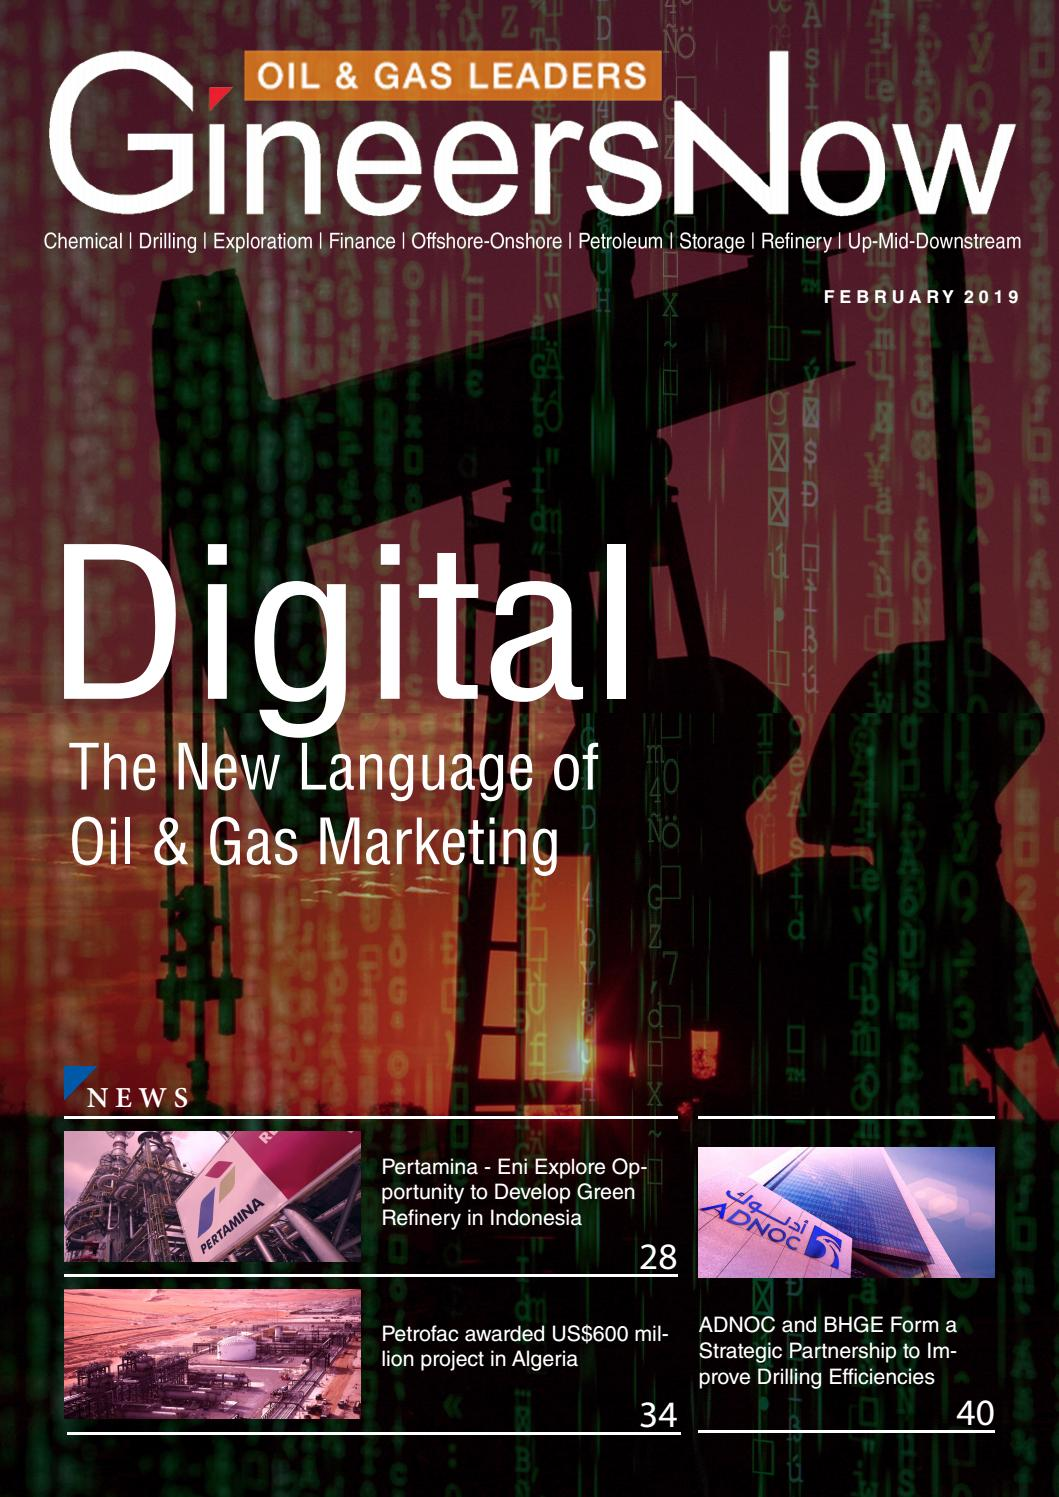 Effective Digital Marketing in the Oil & Gas Industry